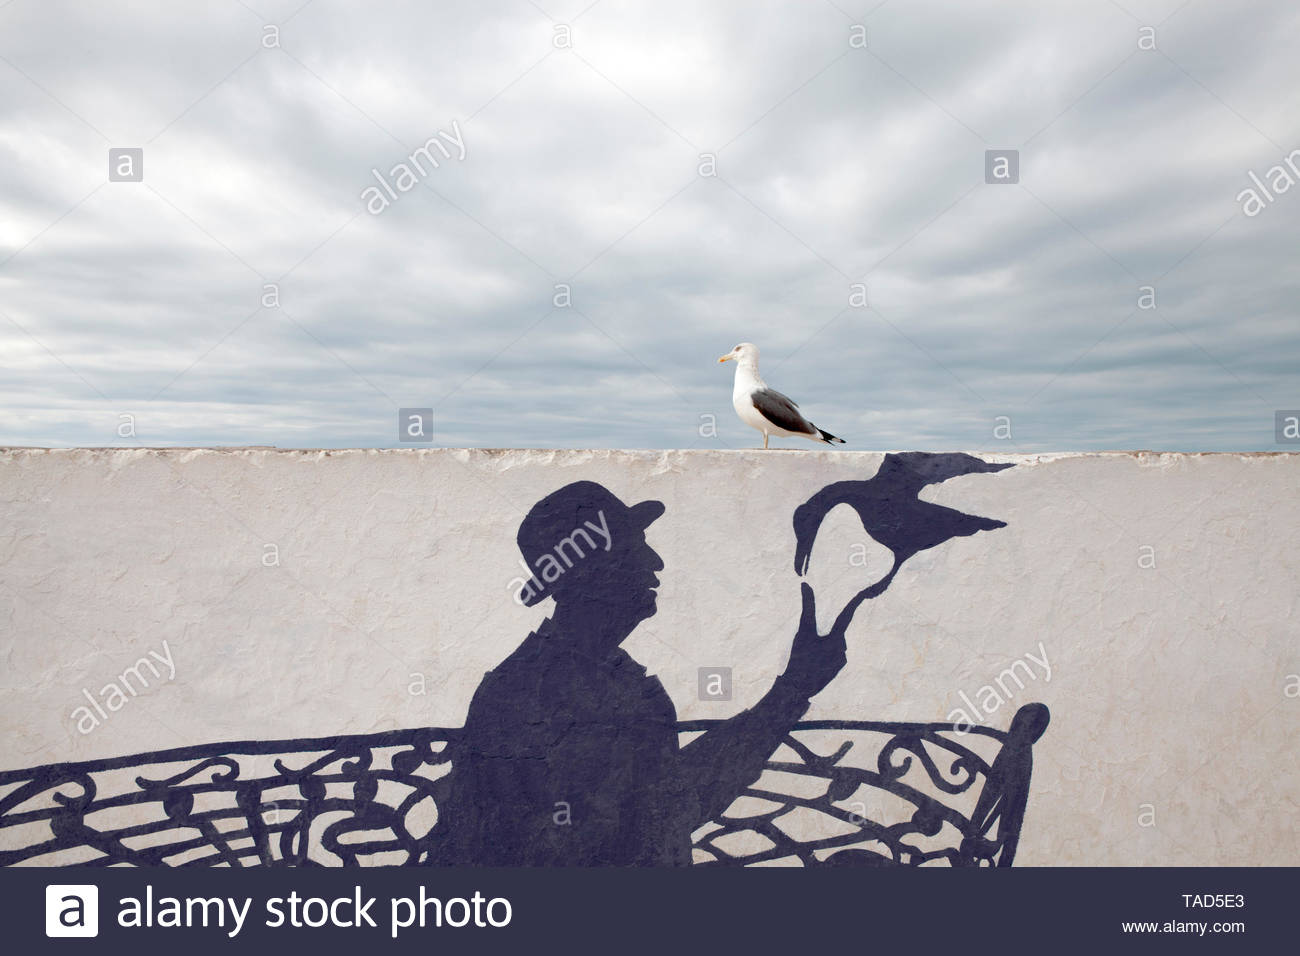 Morocco, Essaouira, wall painting of man wearing a bowler hat with seagull - Stock Image